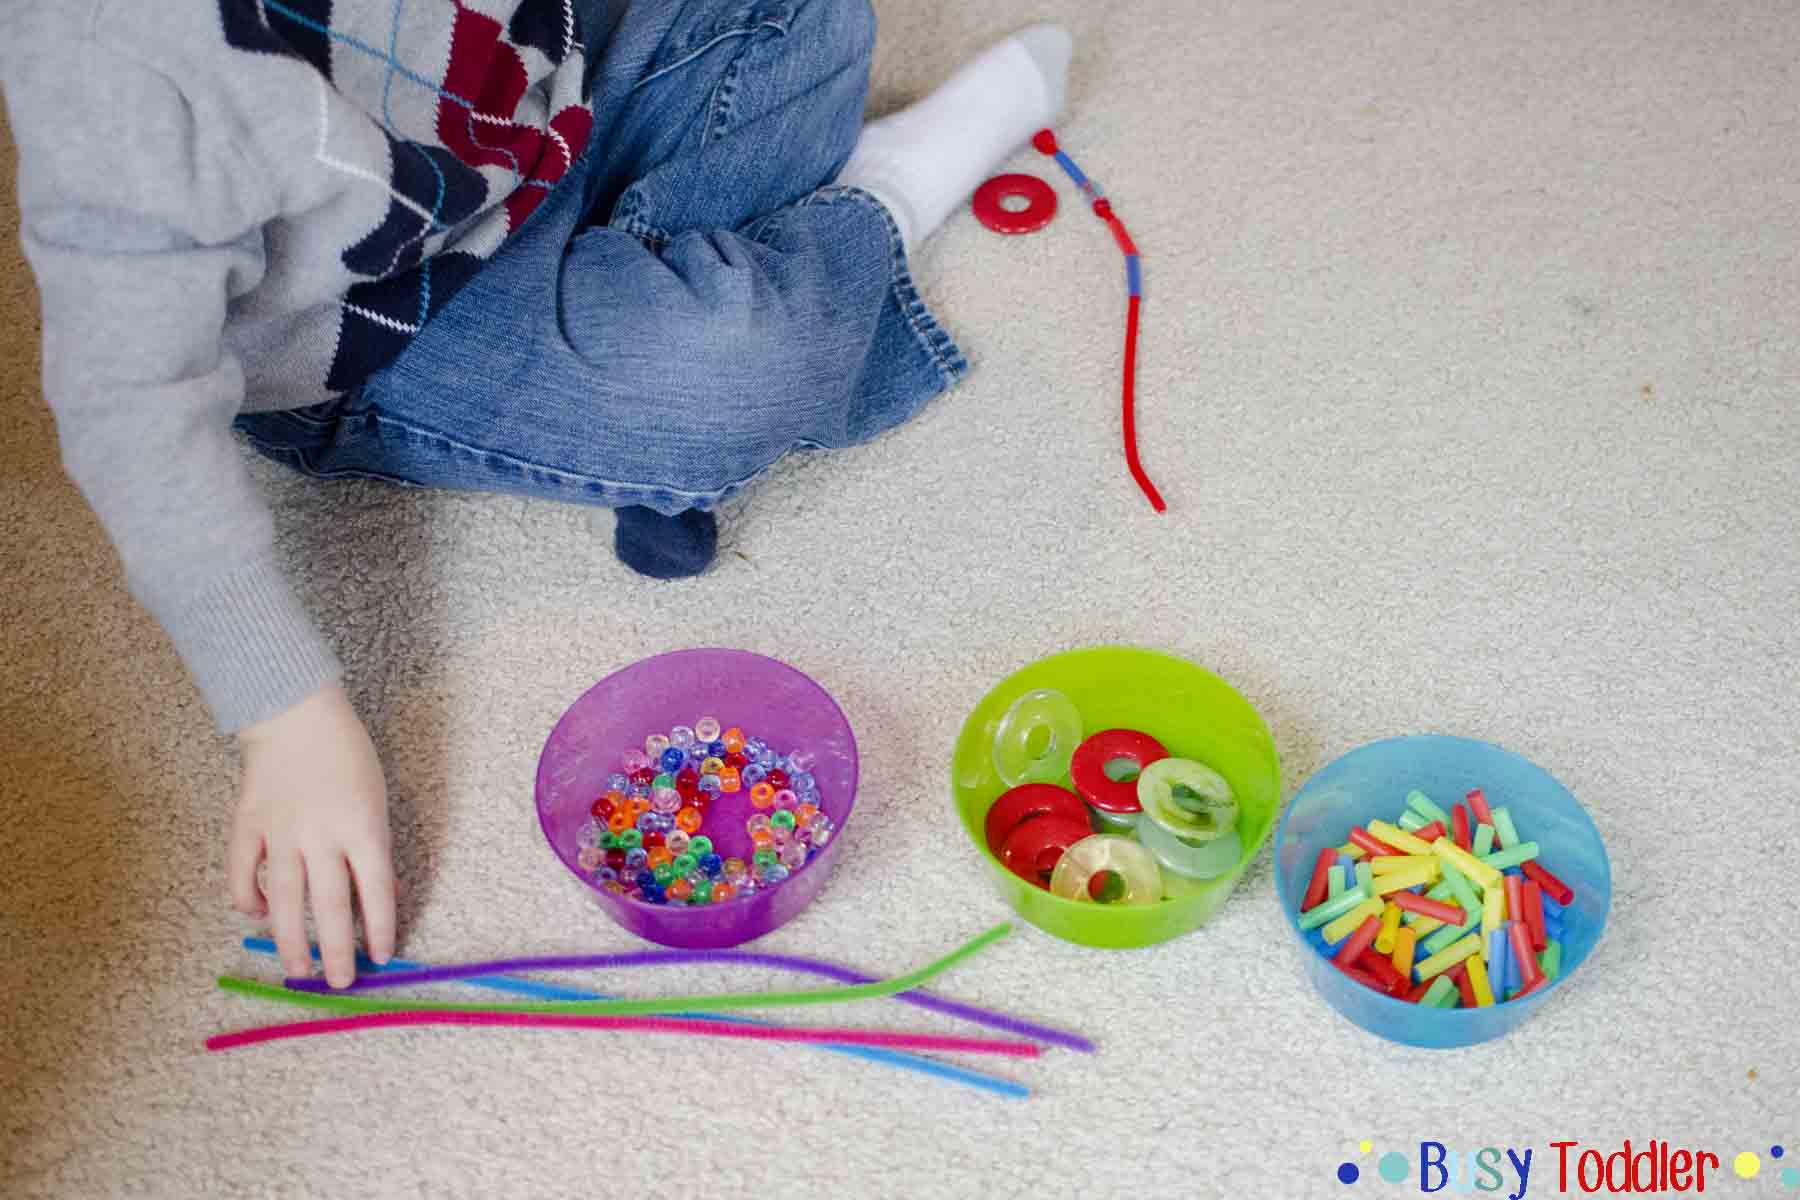 INVITATION TO THREAD: A simple fine motor skills activity that's perfect for toddlers and preschools. A quick activity to keep them occupied and learning.